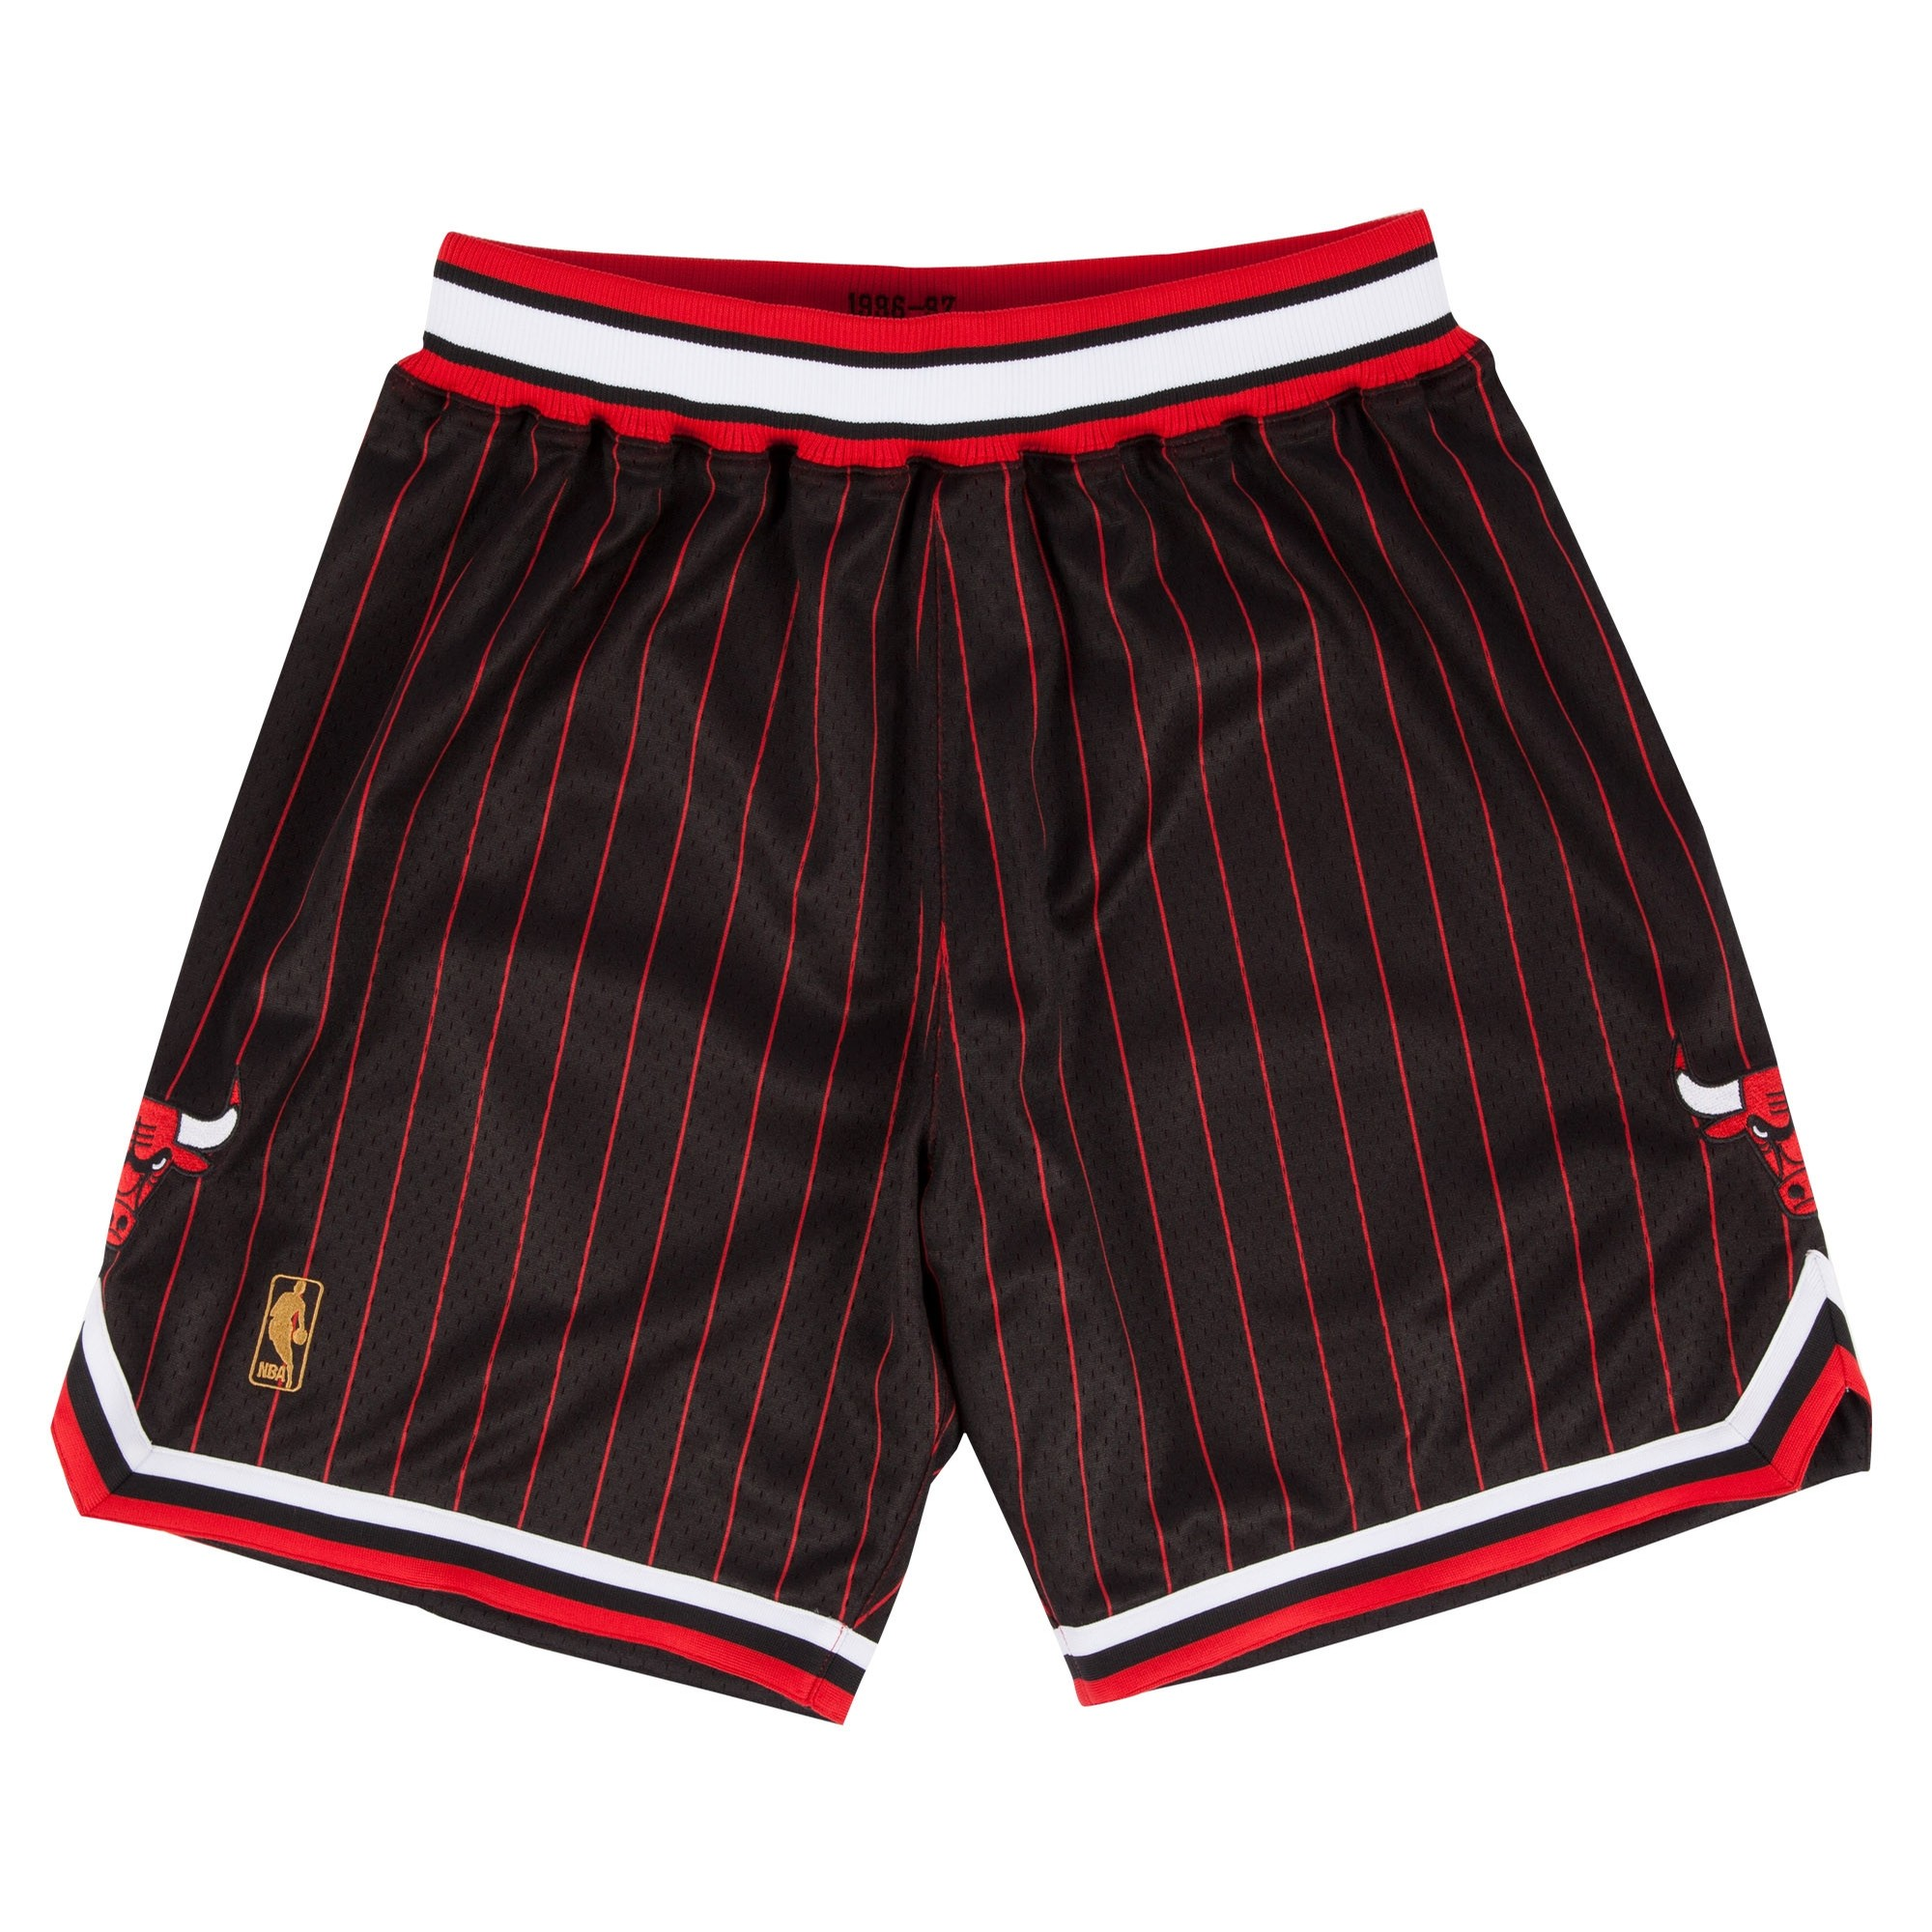 Mitchell & Ness Authentic Chicago Bulls Shorts (Black Pinstripe)